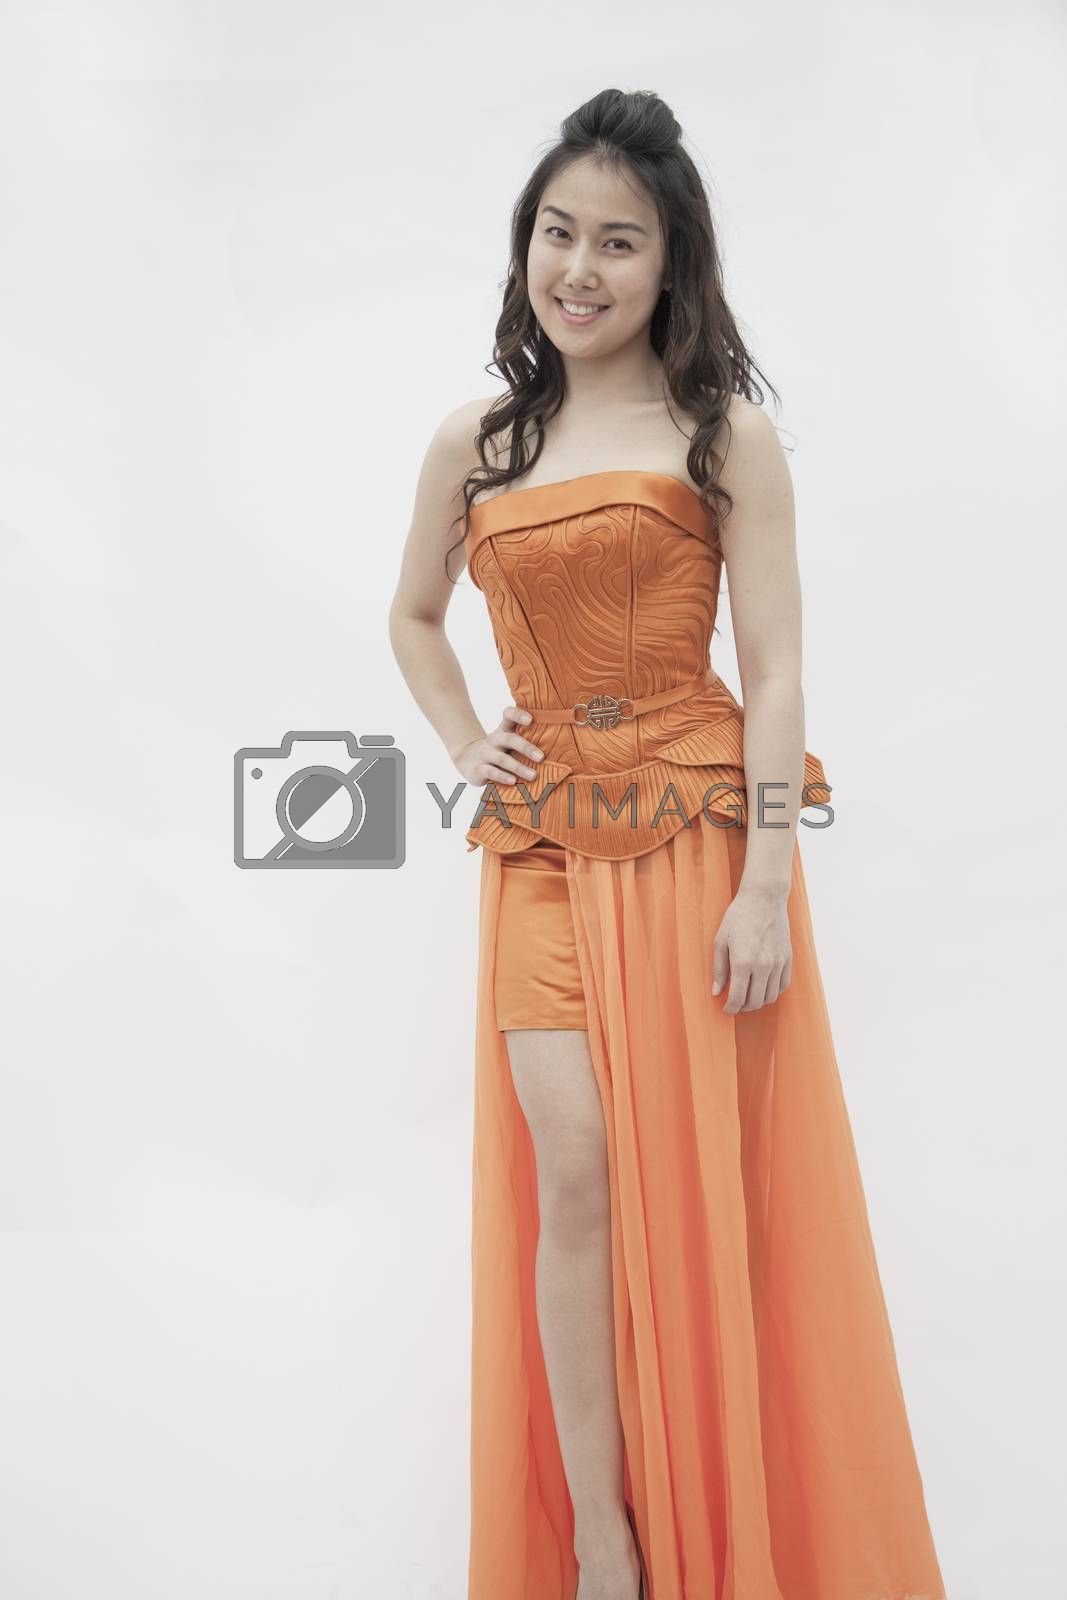 Portrait of young smiling woman with hand on her hip in an orange dress, studio shot